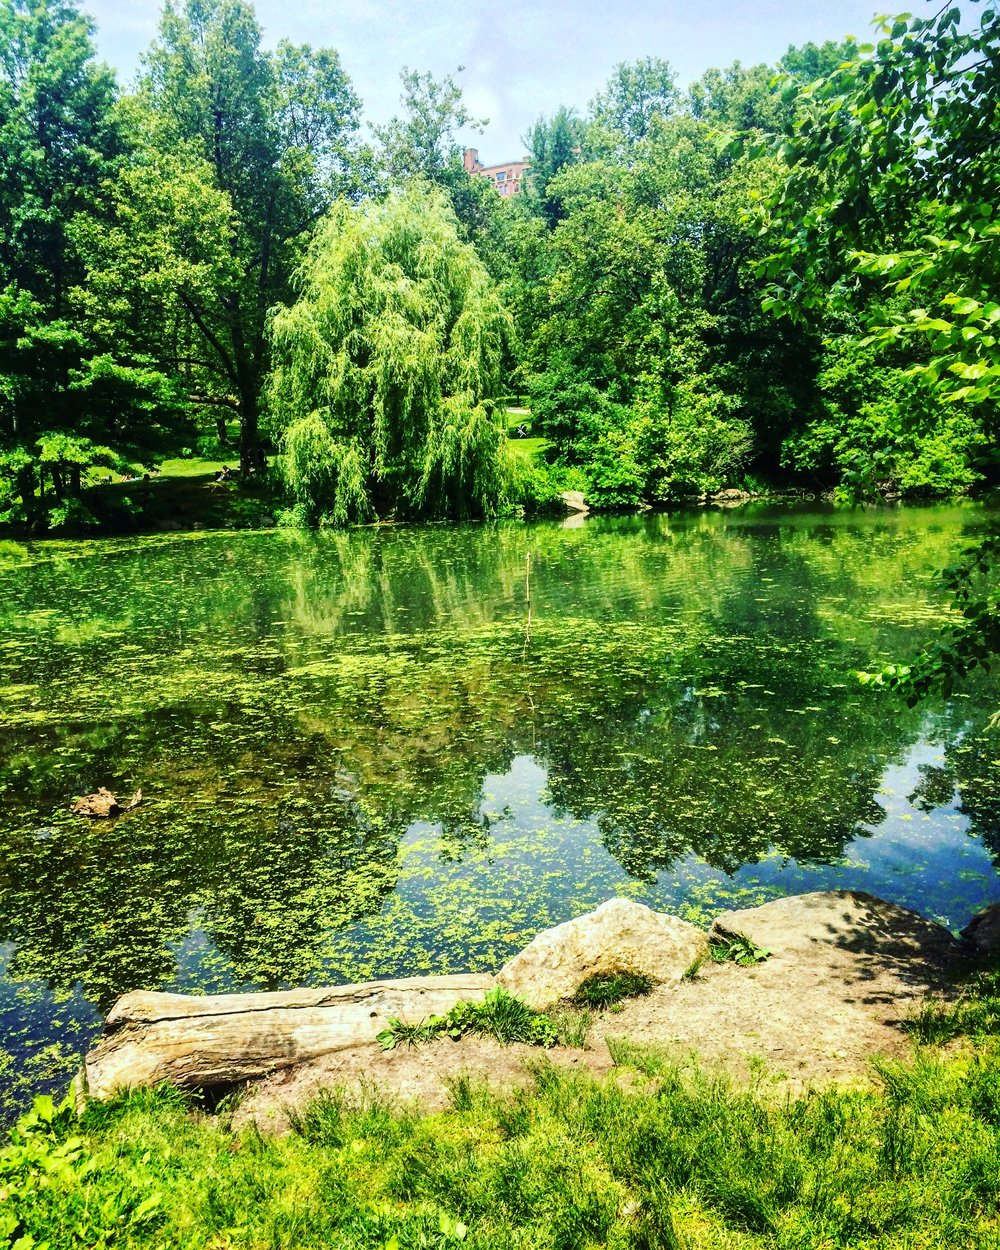 North Woods, Central Park - New York City